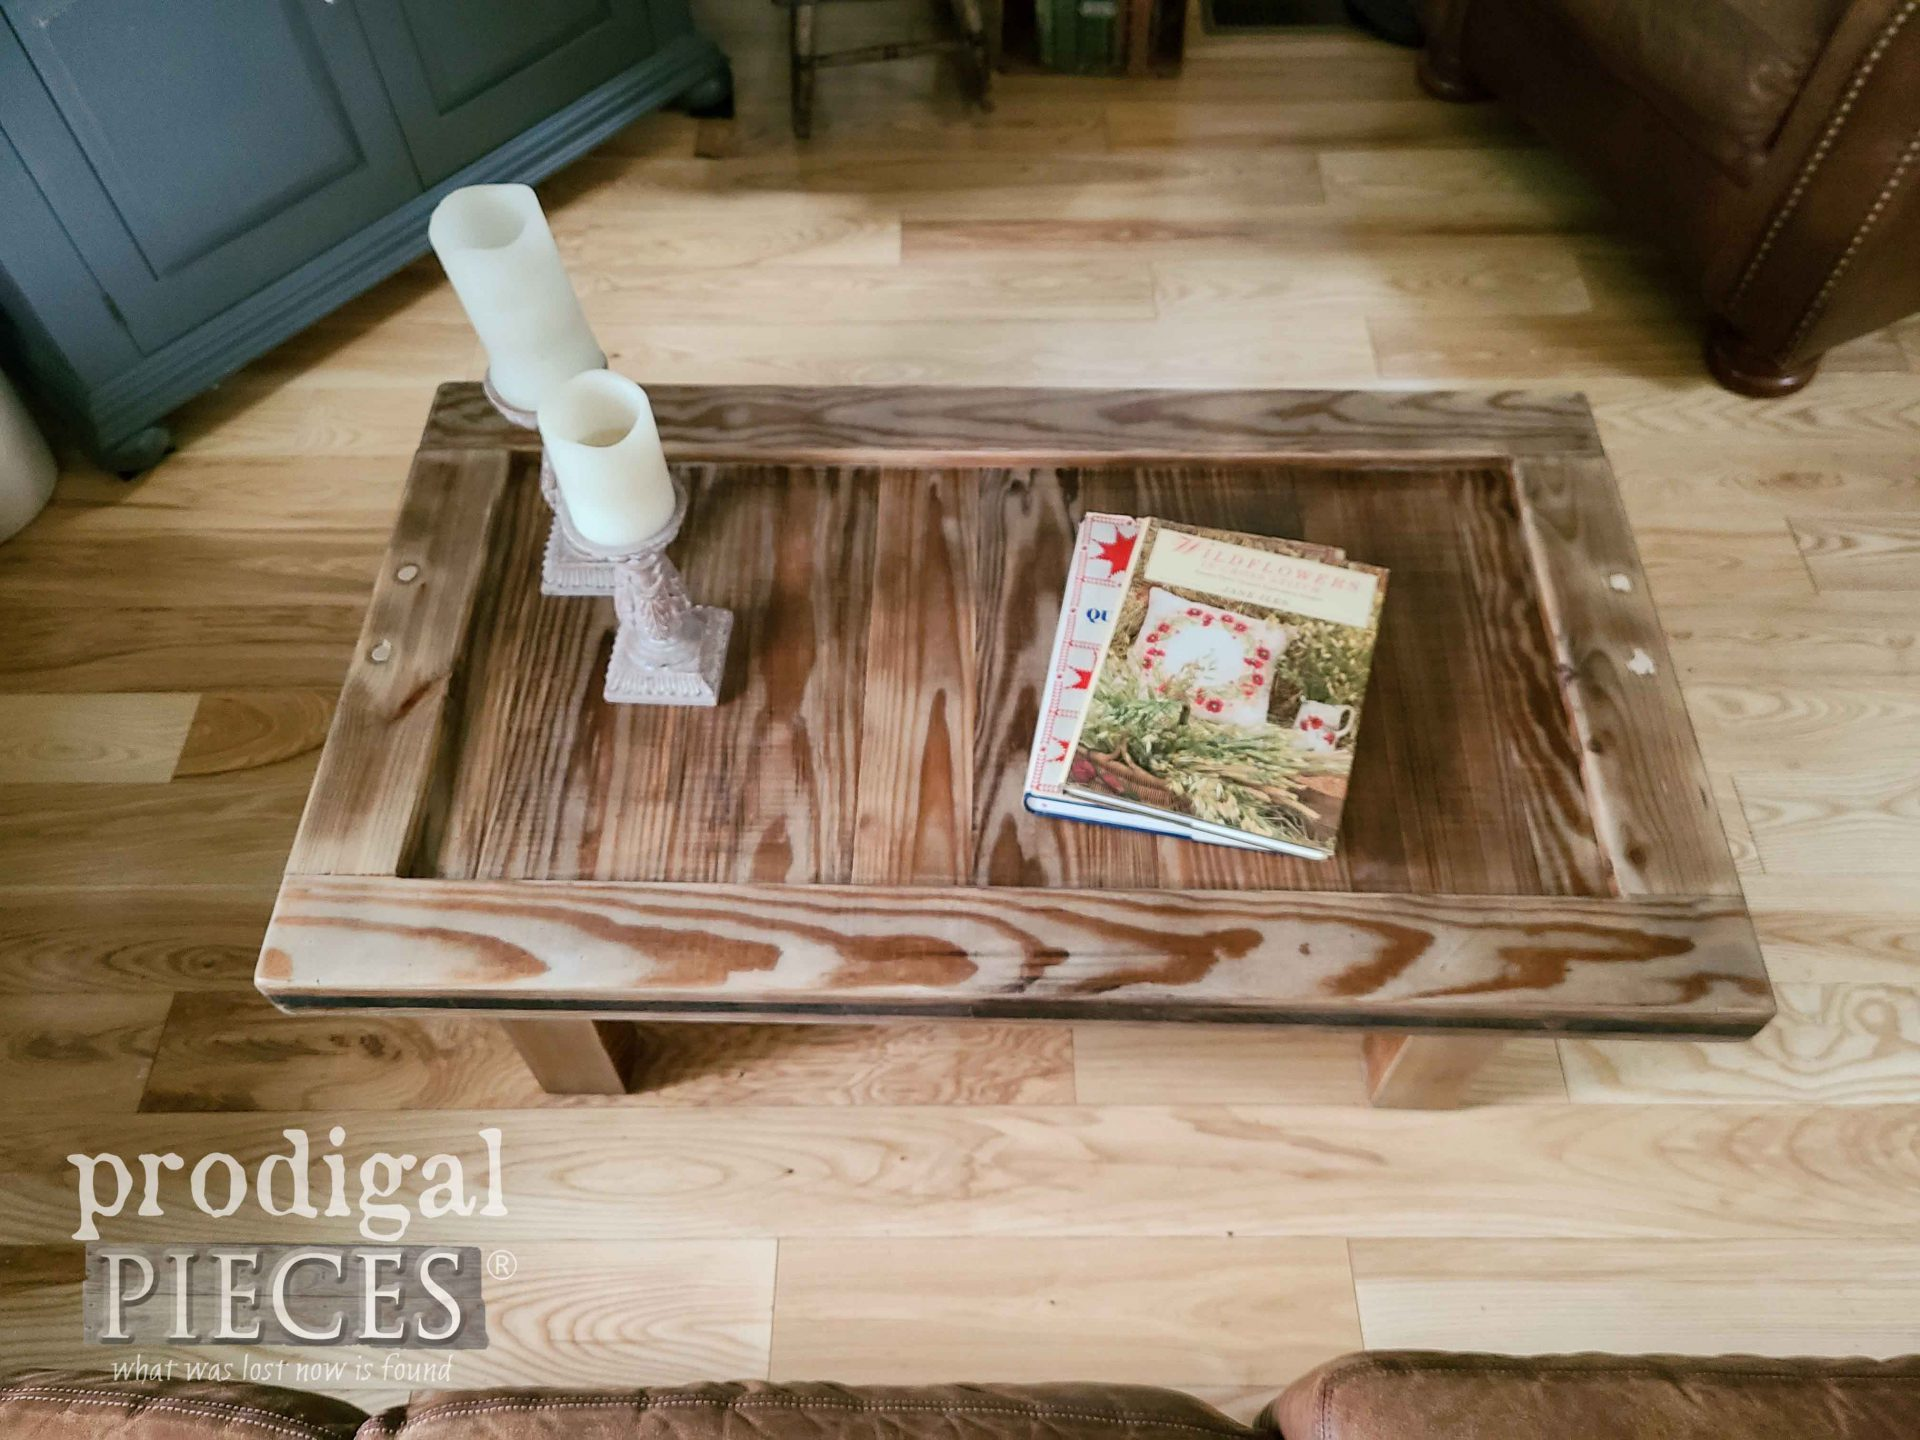 Upcycled Coffee Table Top by Prodigal Pieces | prodigalpieces.com #prodigalpieces #furniture #home #homedecor